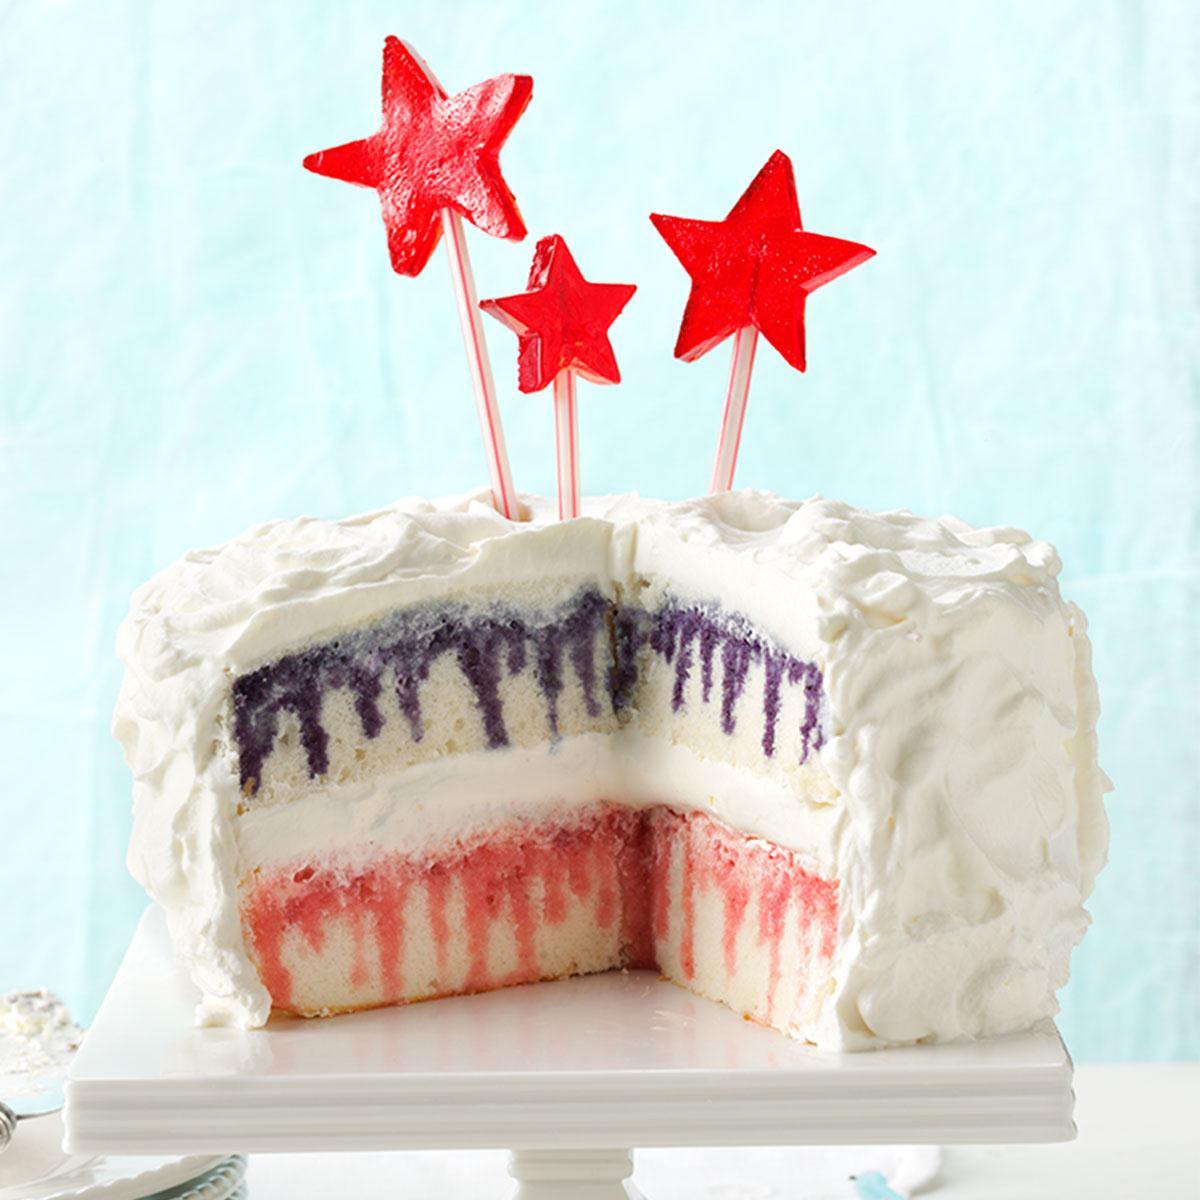 4Th Of July Birthday Cakes Red White Blueberry Poke Cake Recipe Taste Of Home